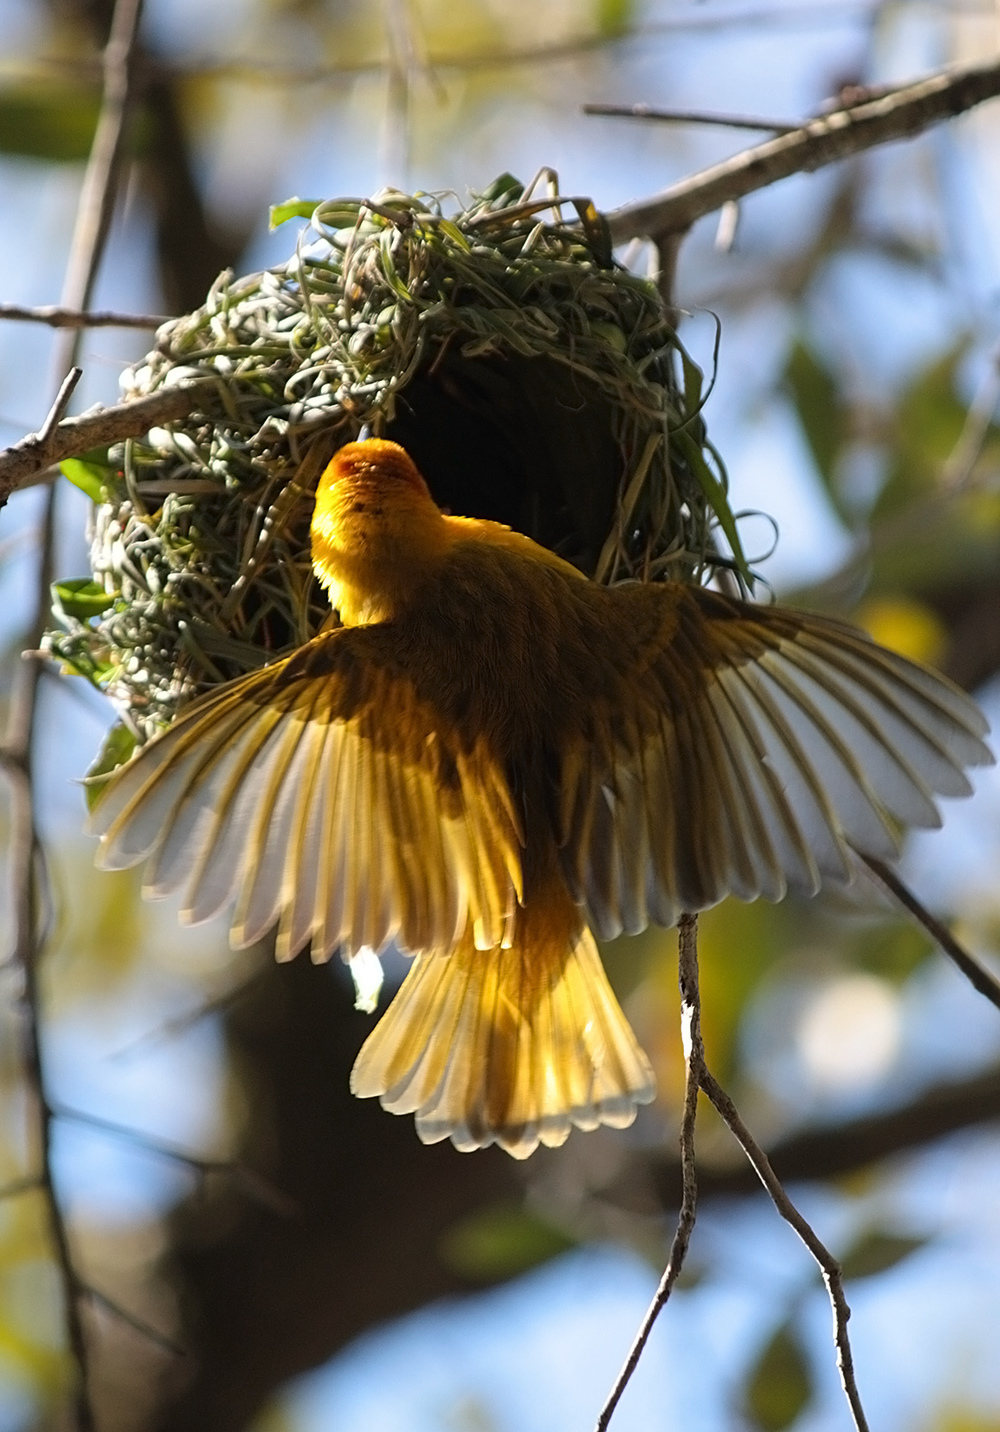 African Weaver bird nesting at Disney's Animal Kingdom park